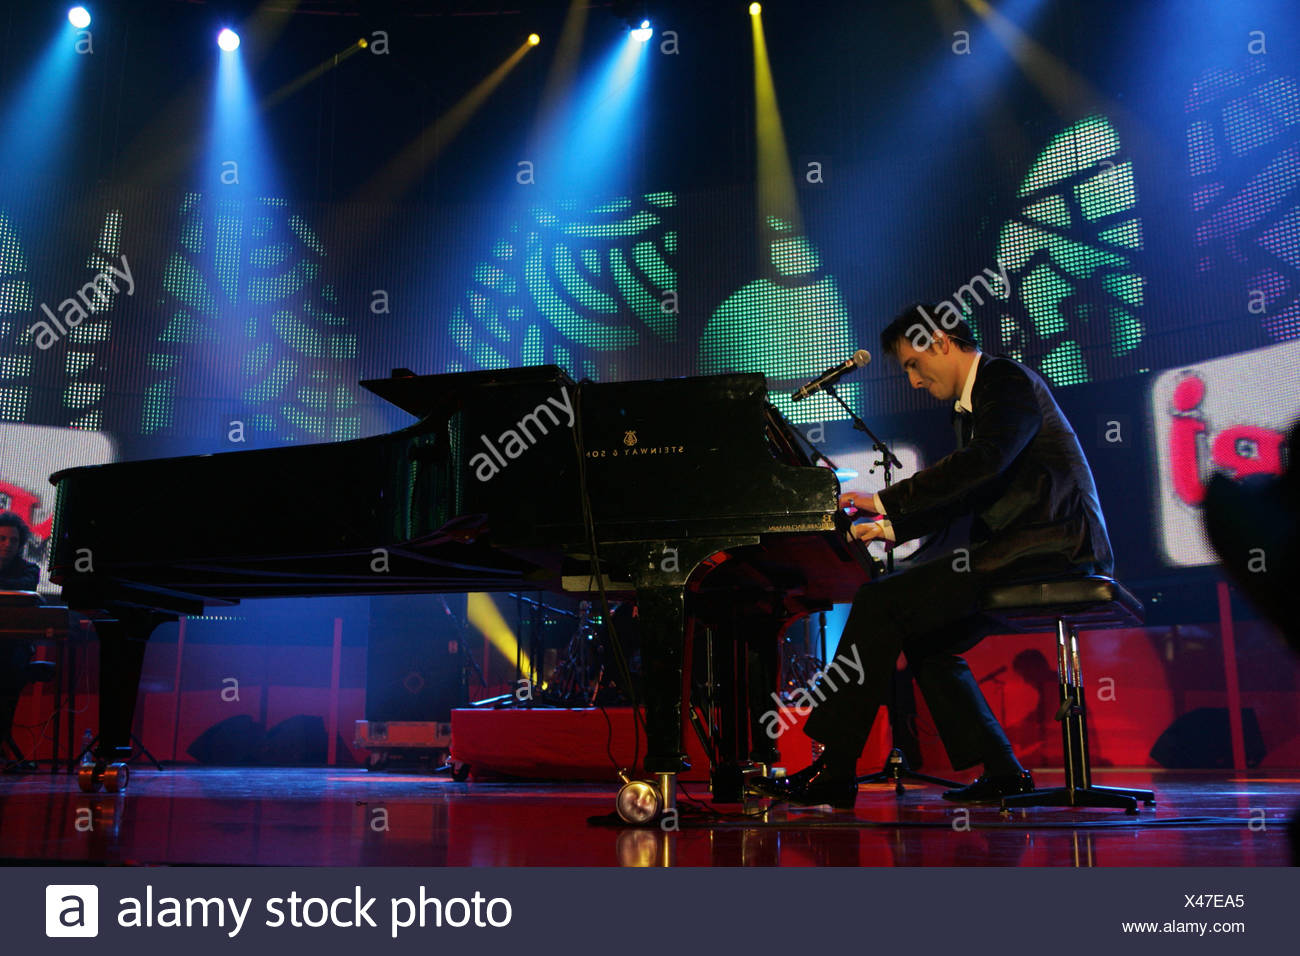 Peter Cincotti, US singer and songwriter, performing live at Energy Stars For Free at Hallenstadion Zurich, Switzerland - Stock Image